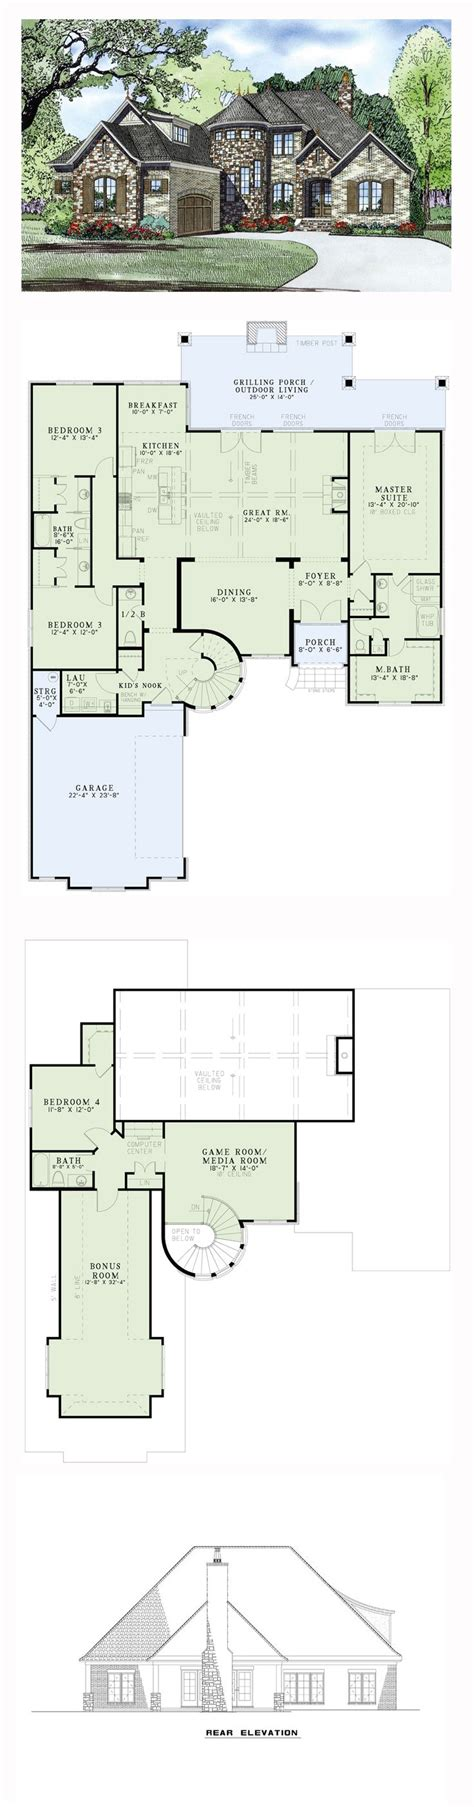 bilbo baggins house floor plan bilbo baggins house floor plan bilbo baggins hobbit house floor plans